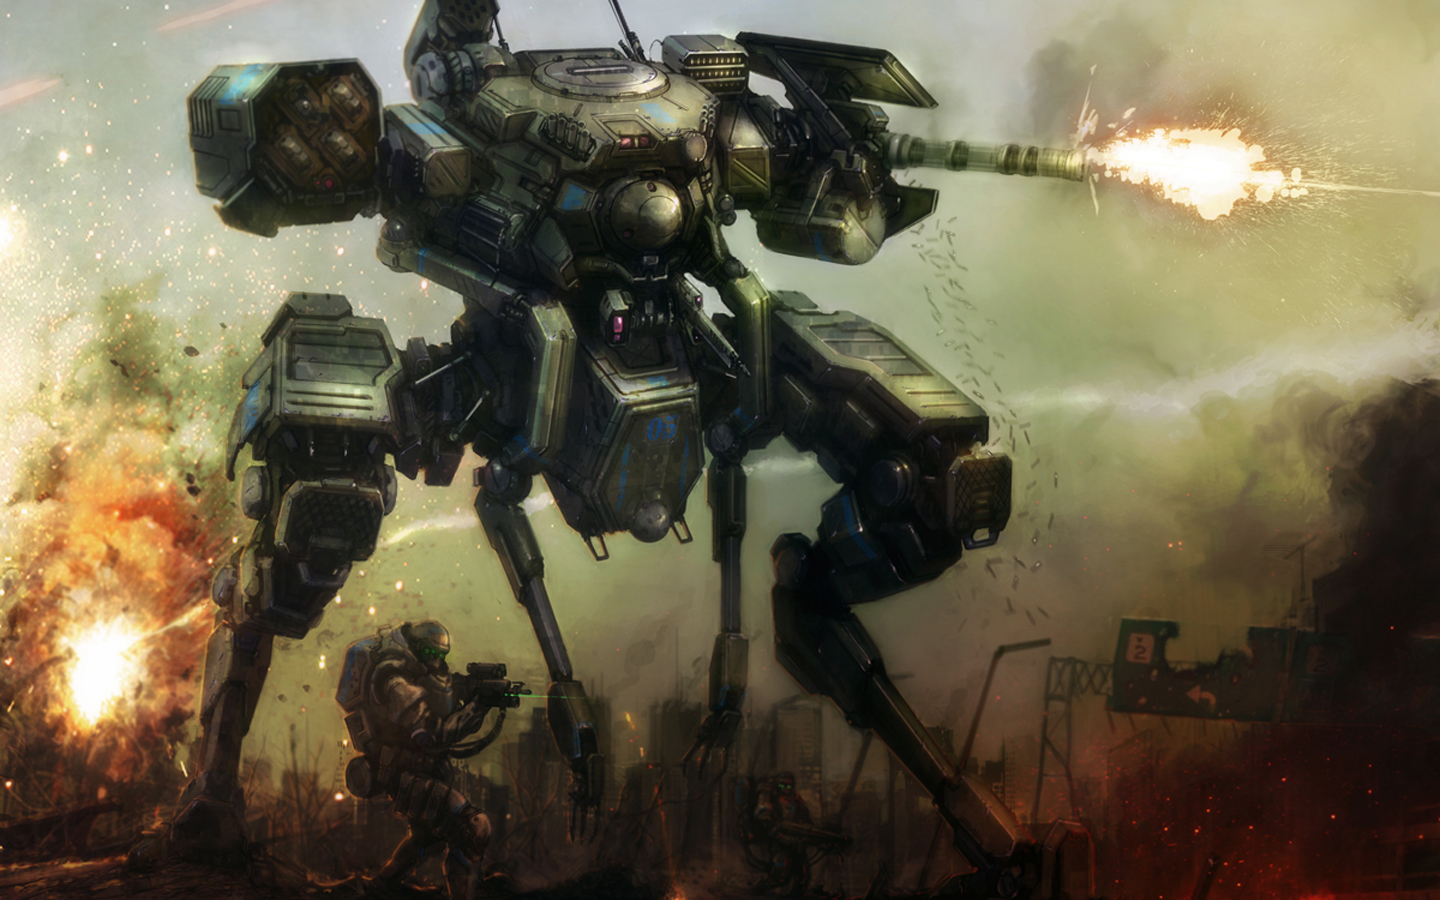 1440x900 Robots War wallpaper